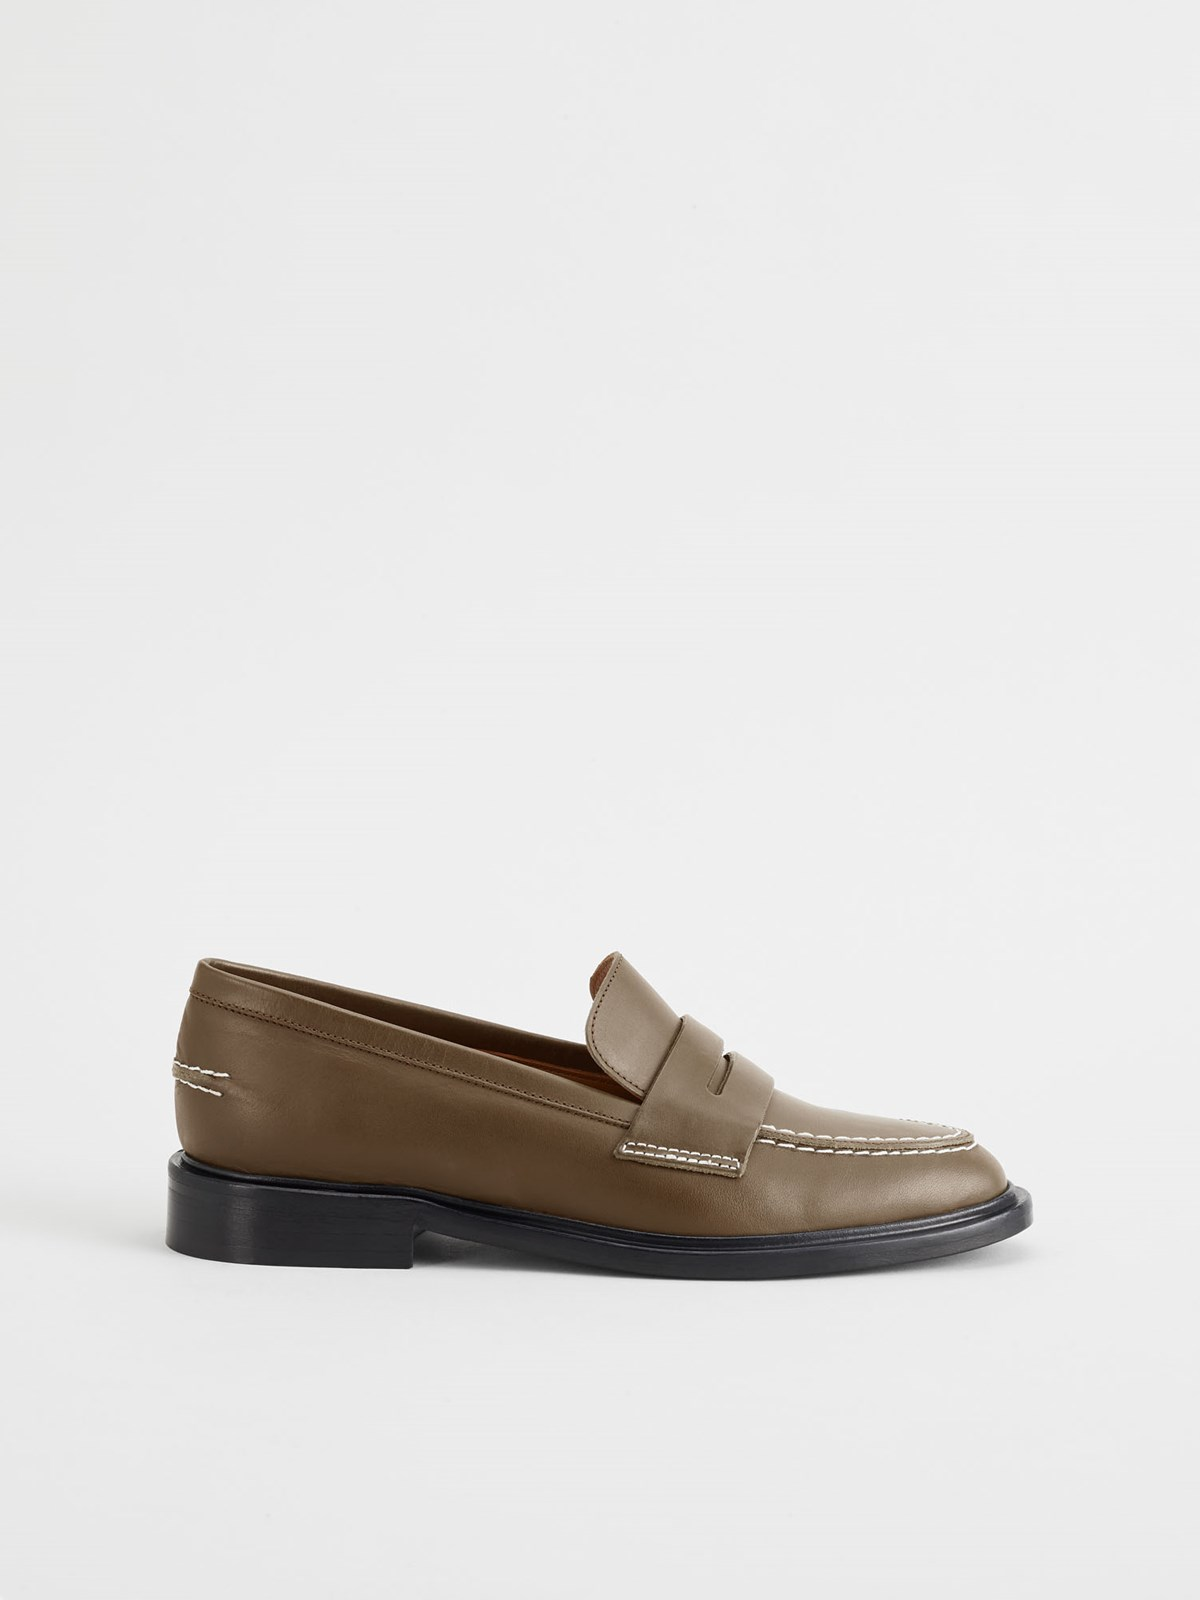 Monti Khaki Brown Loafers